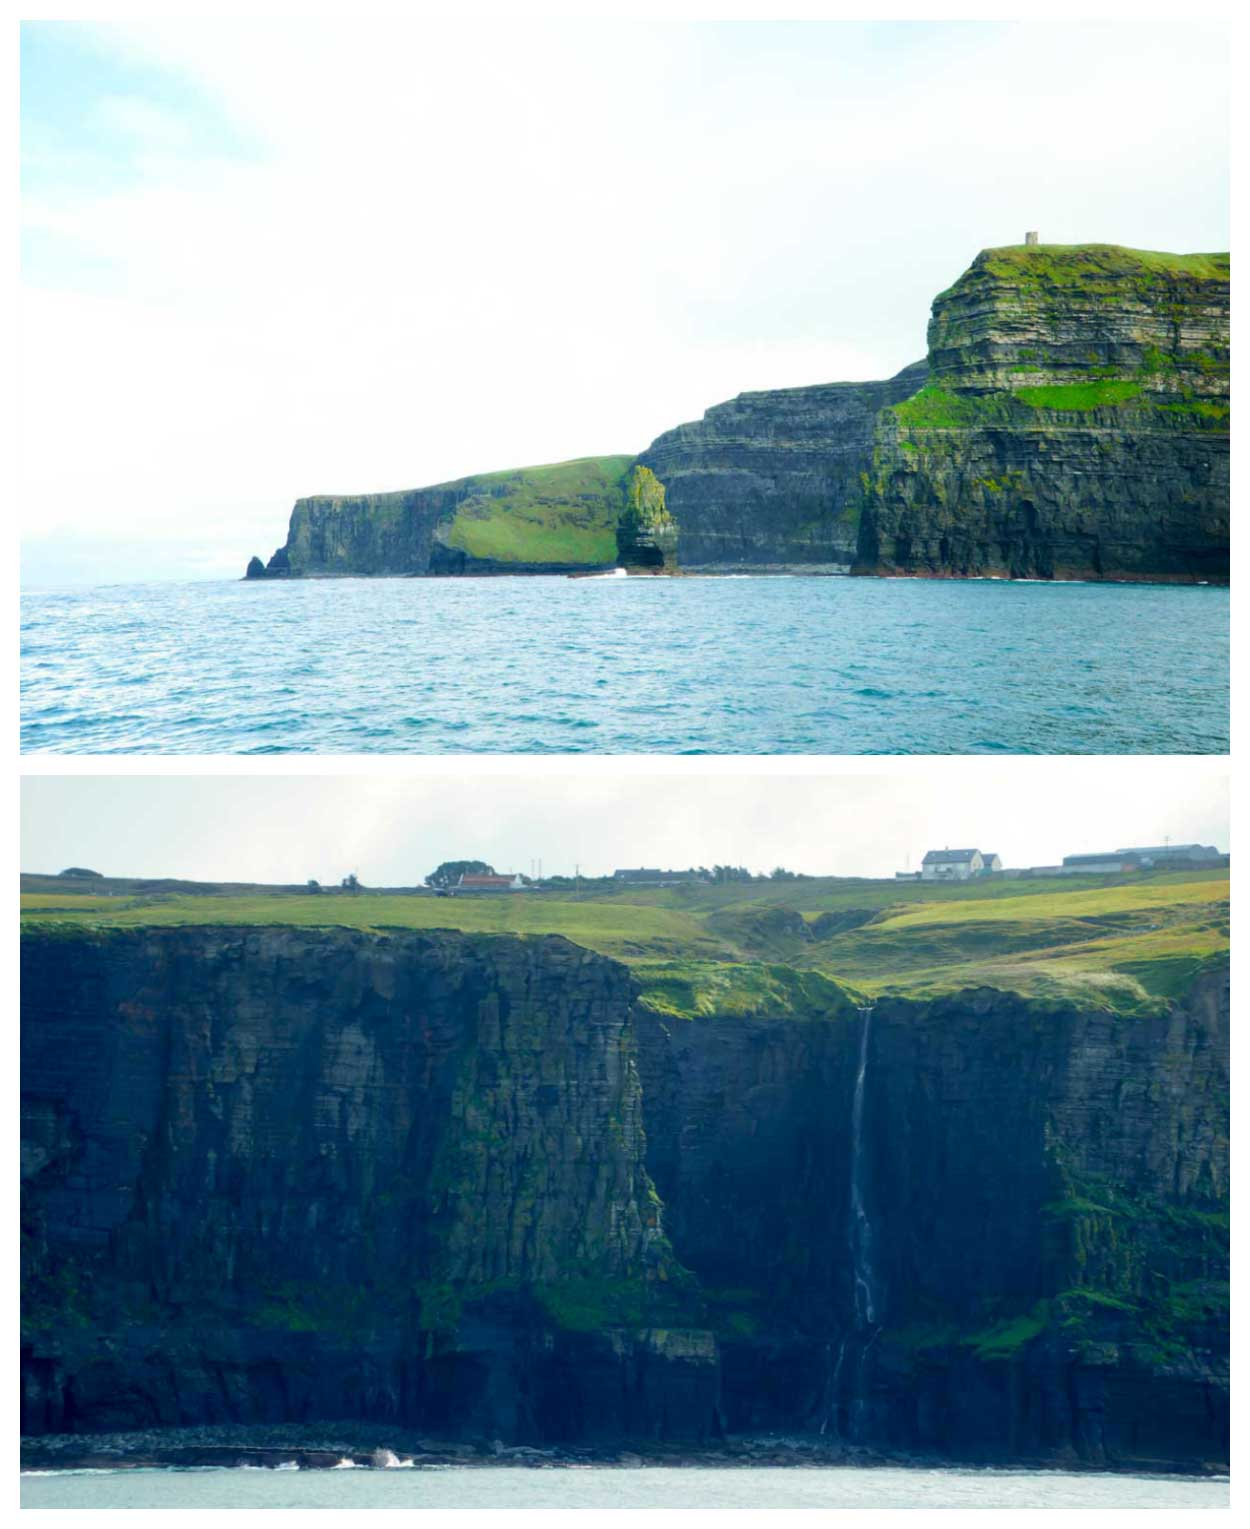 The Cliffs of Moher from the sea